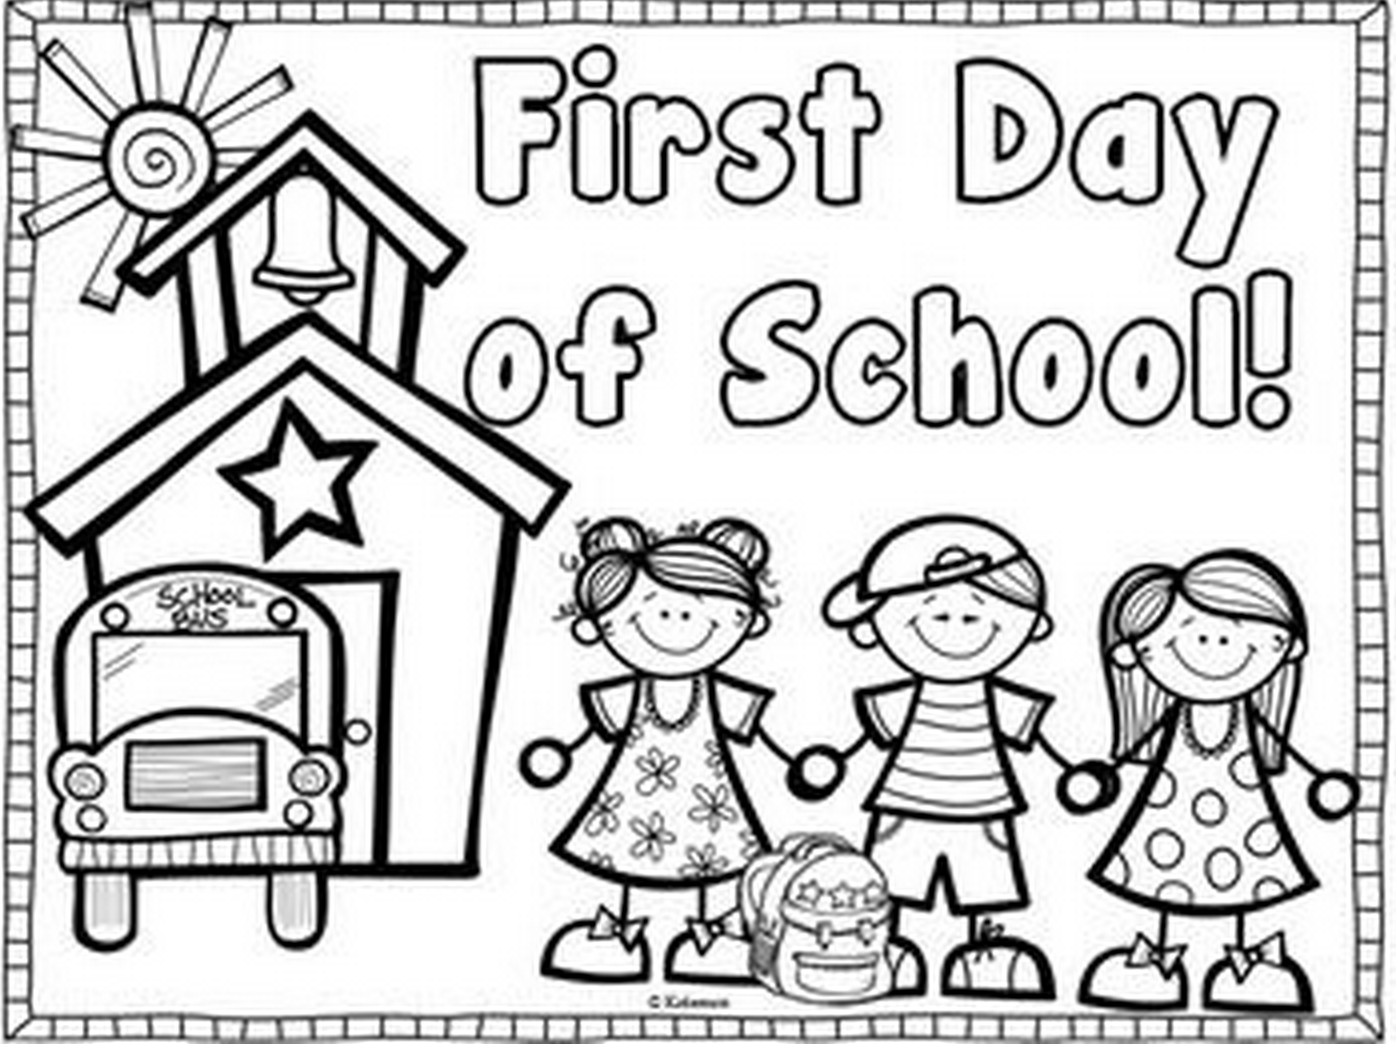 Back To School Coloring Pages  First Day of School & Coloring Book